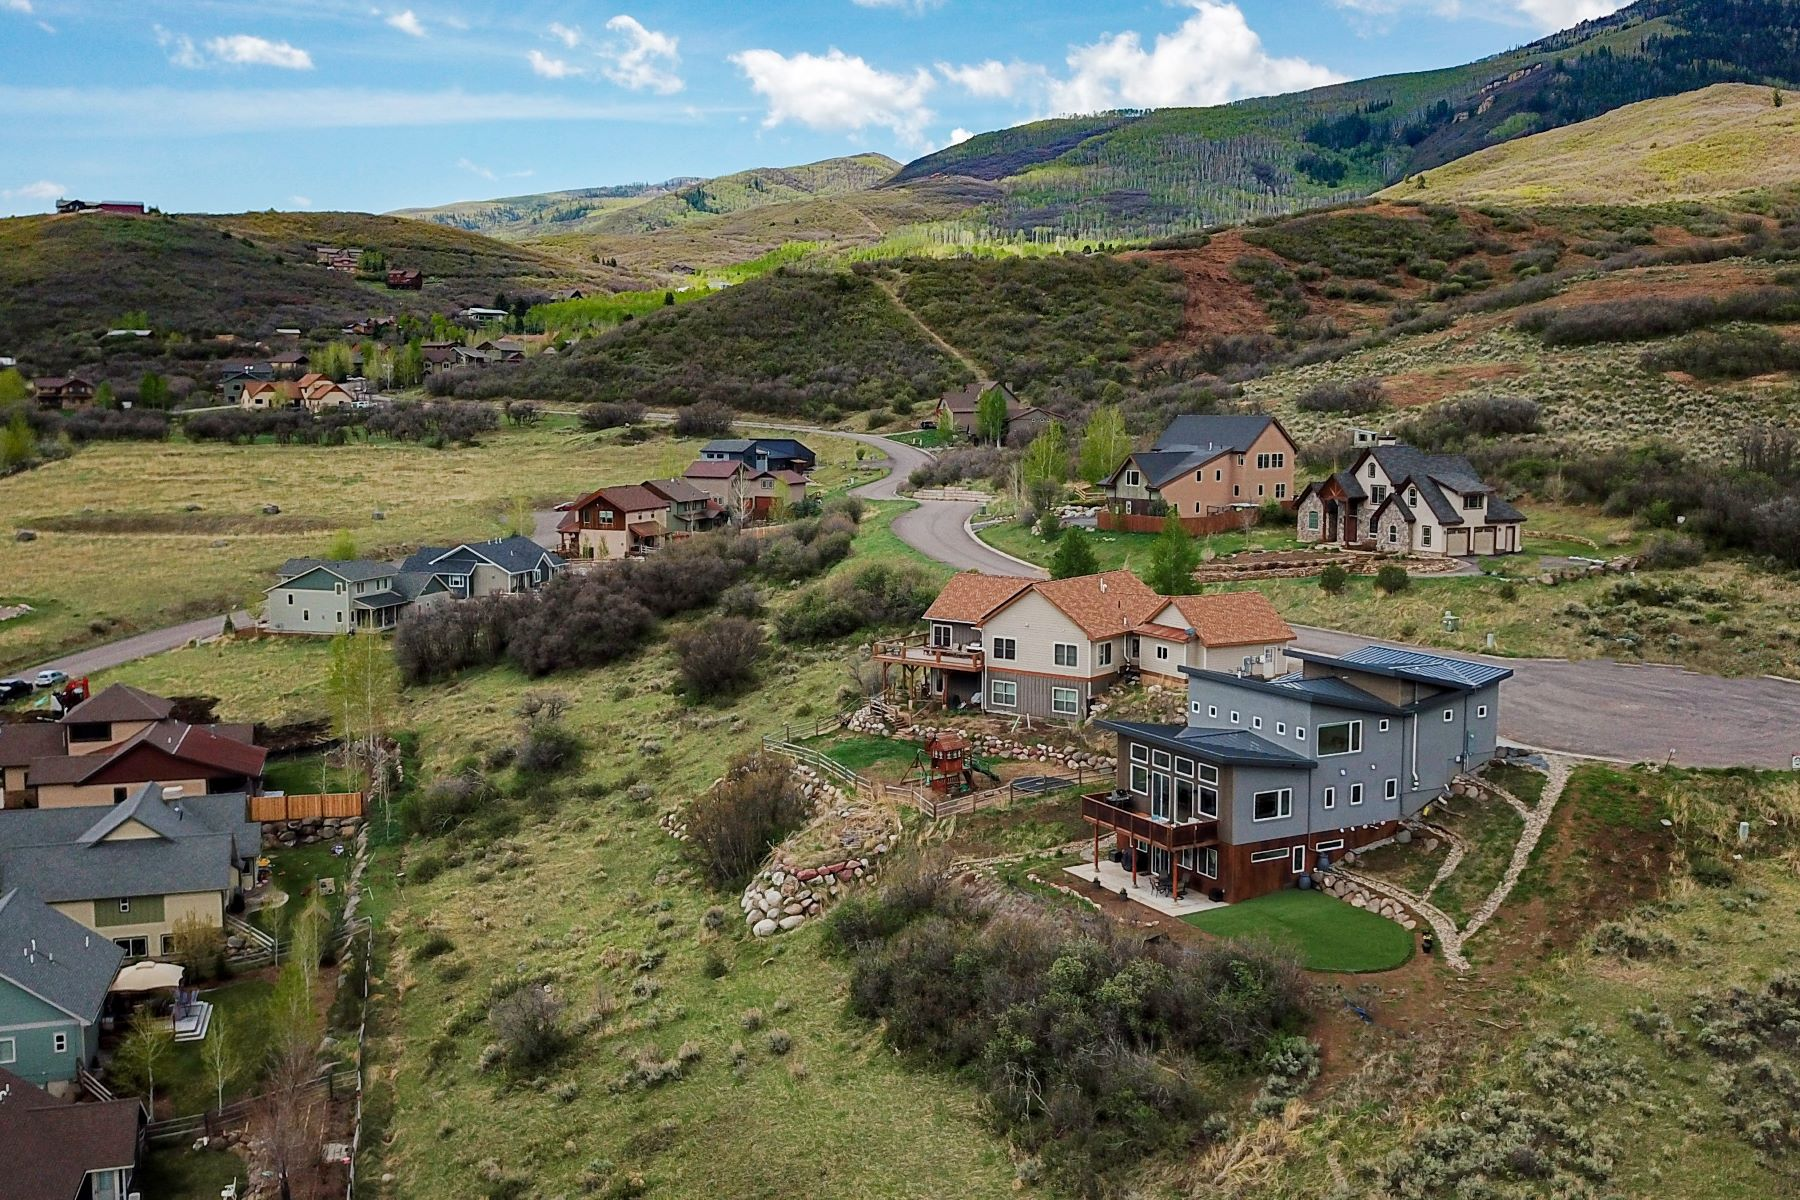 Single Family Homes for Sale at Contemporary Oak Meadows Home 639 Old Midland Spur Glenwood Springs, Colorado 81601 United States